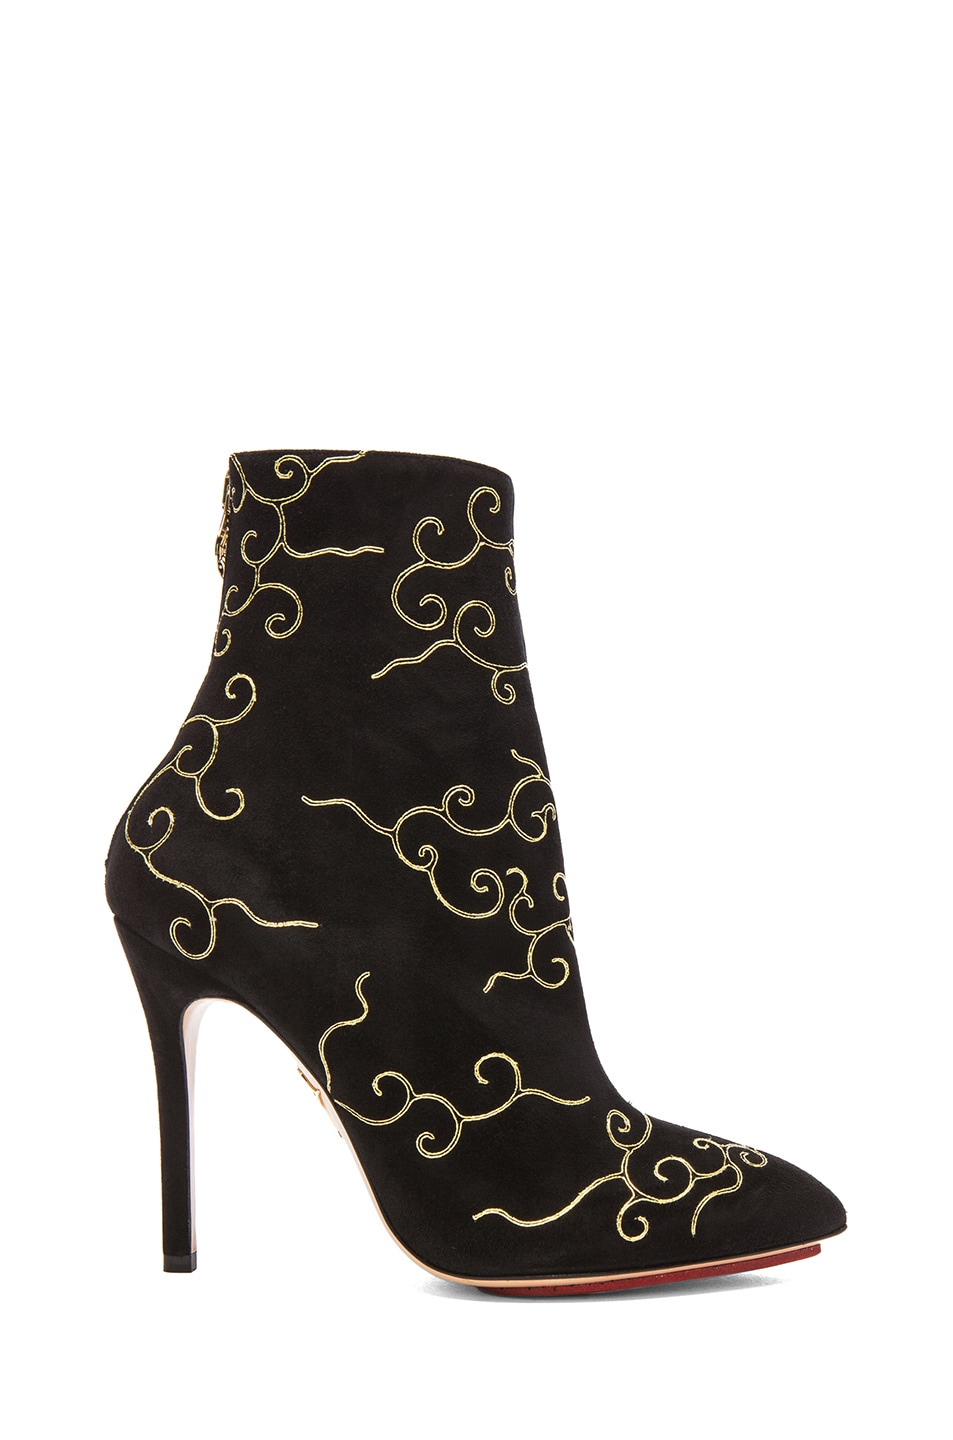 Image 1 of Charlotte Olympia Betsy Suede Booties in Onyx